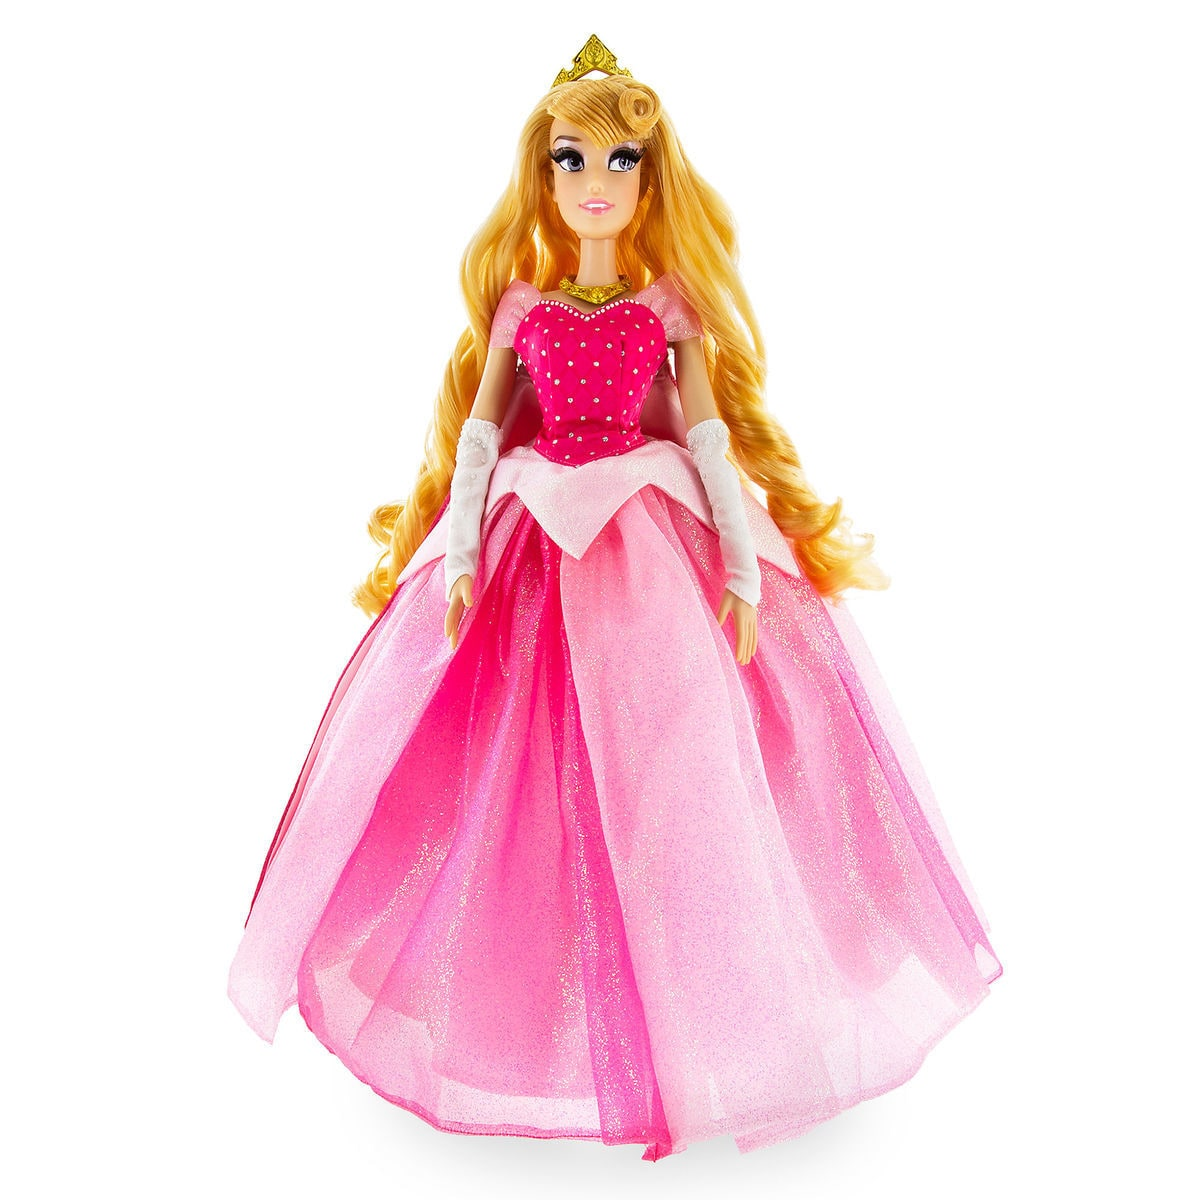 Auroras Celebration Collection Doll Sleeping Beauty Limited